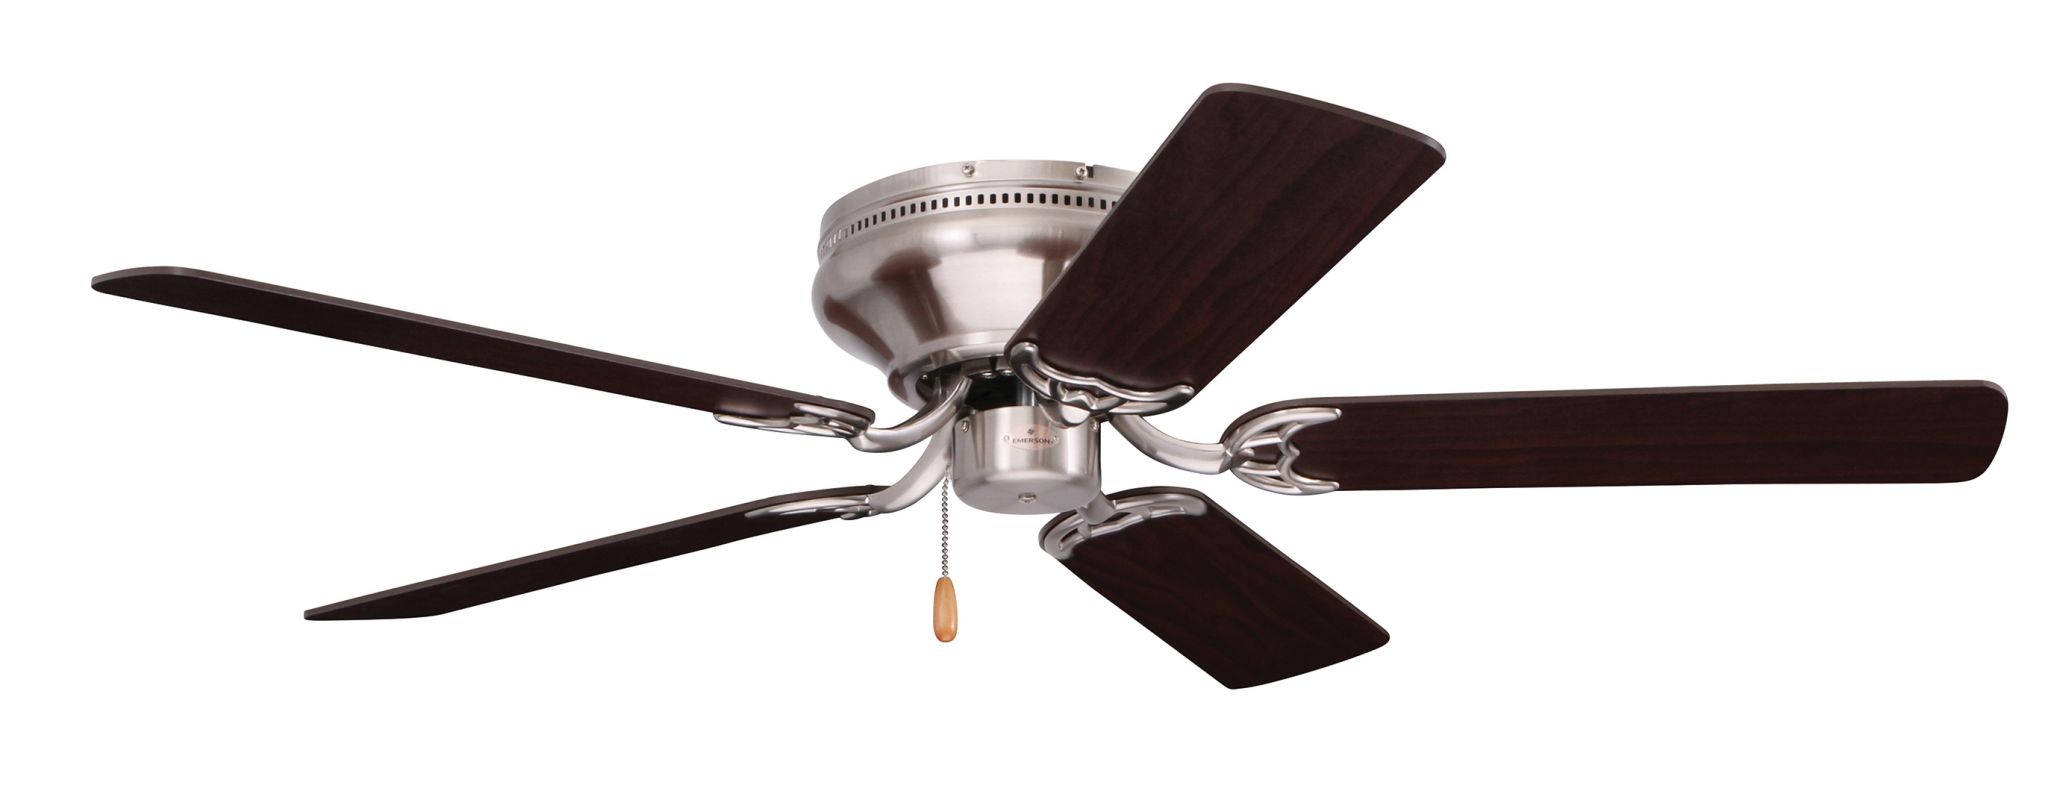 Emerson cf804sbs brushed steel snugger 42 5 blade ceiling for The emerson